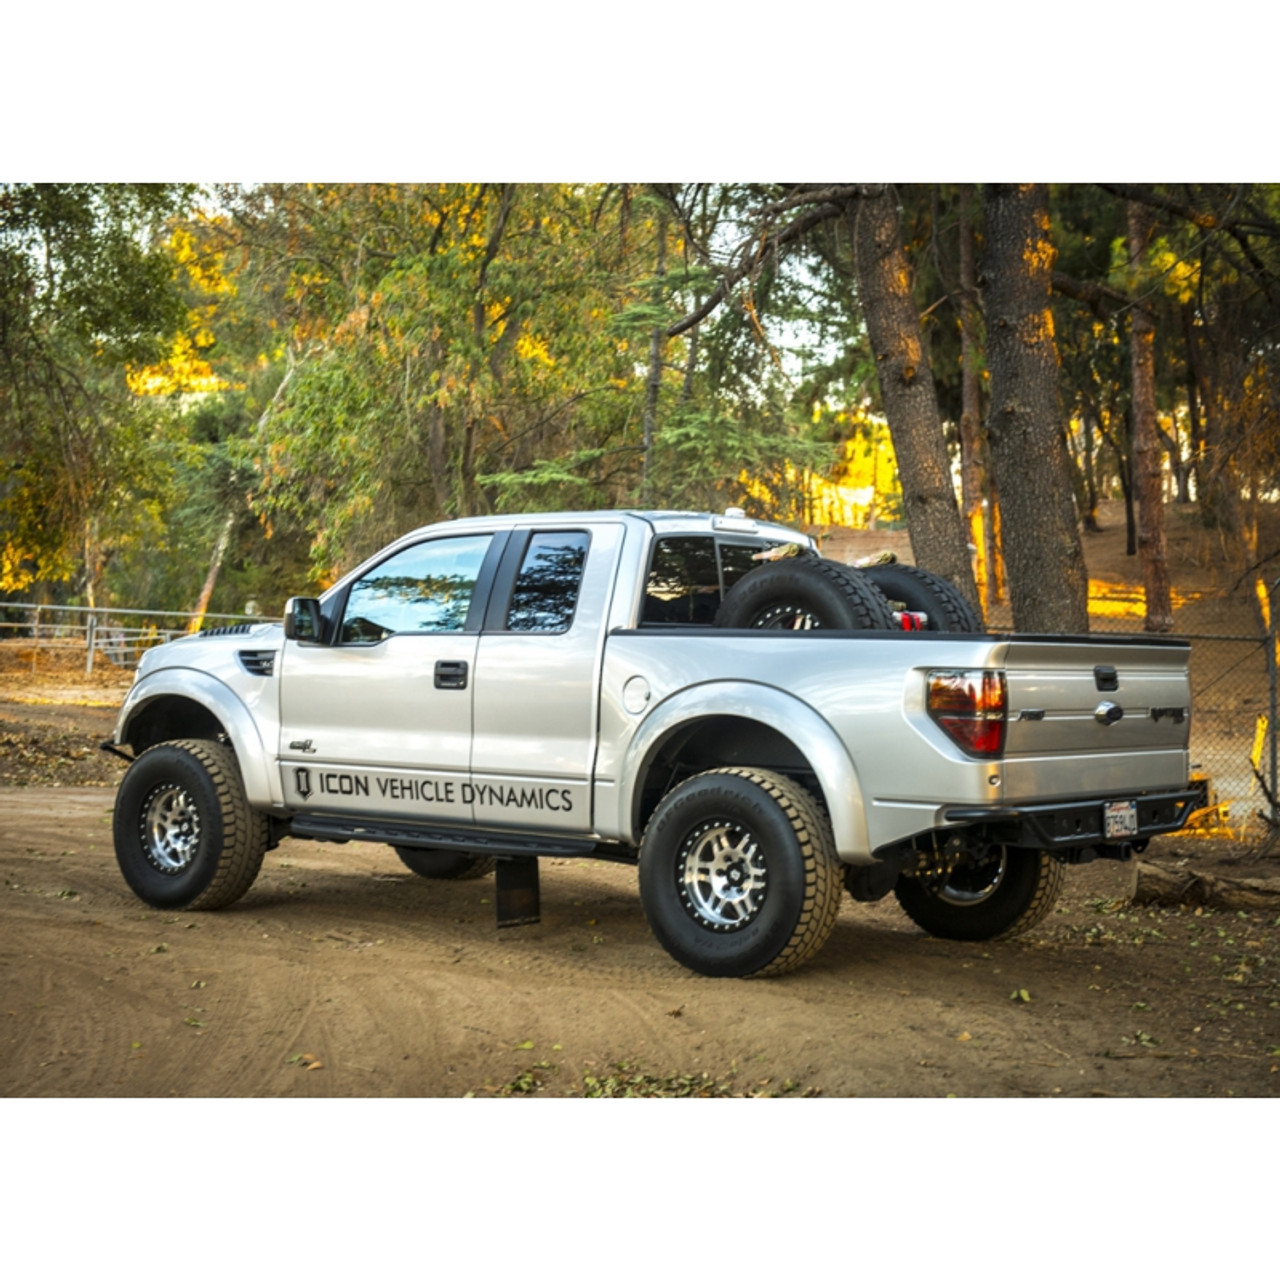 Icon Dynamics Stage 2 Performance 3.0 Suspension System for 10-14 Ford SVT Raptor - K93052